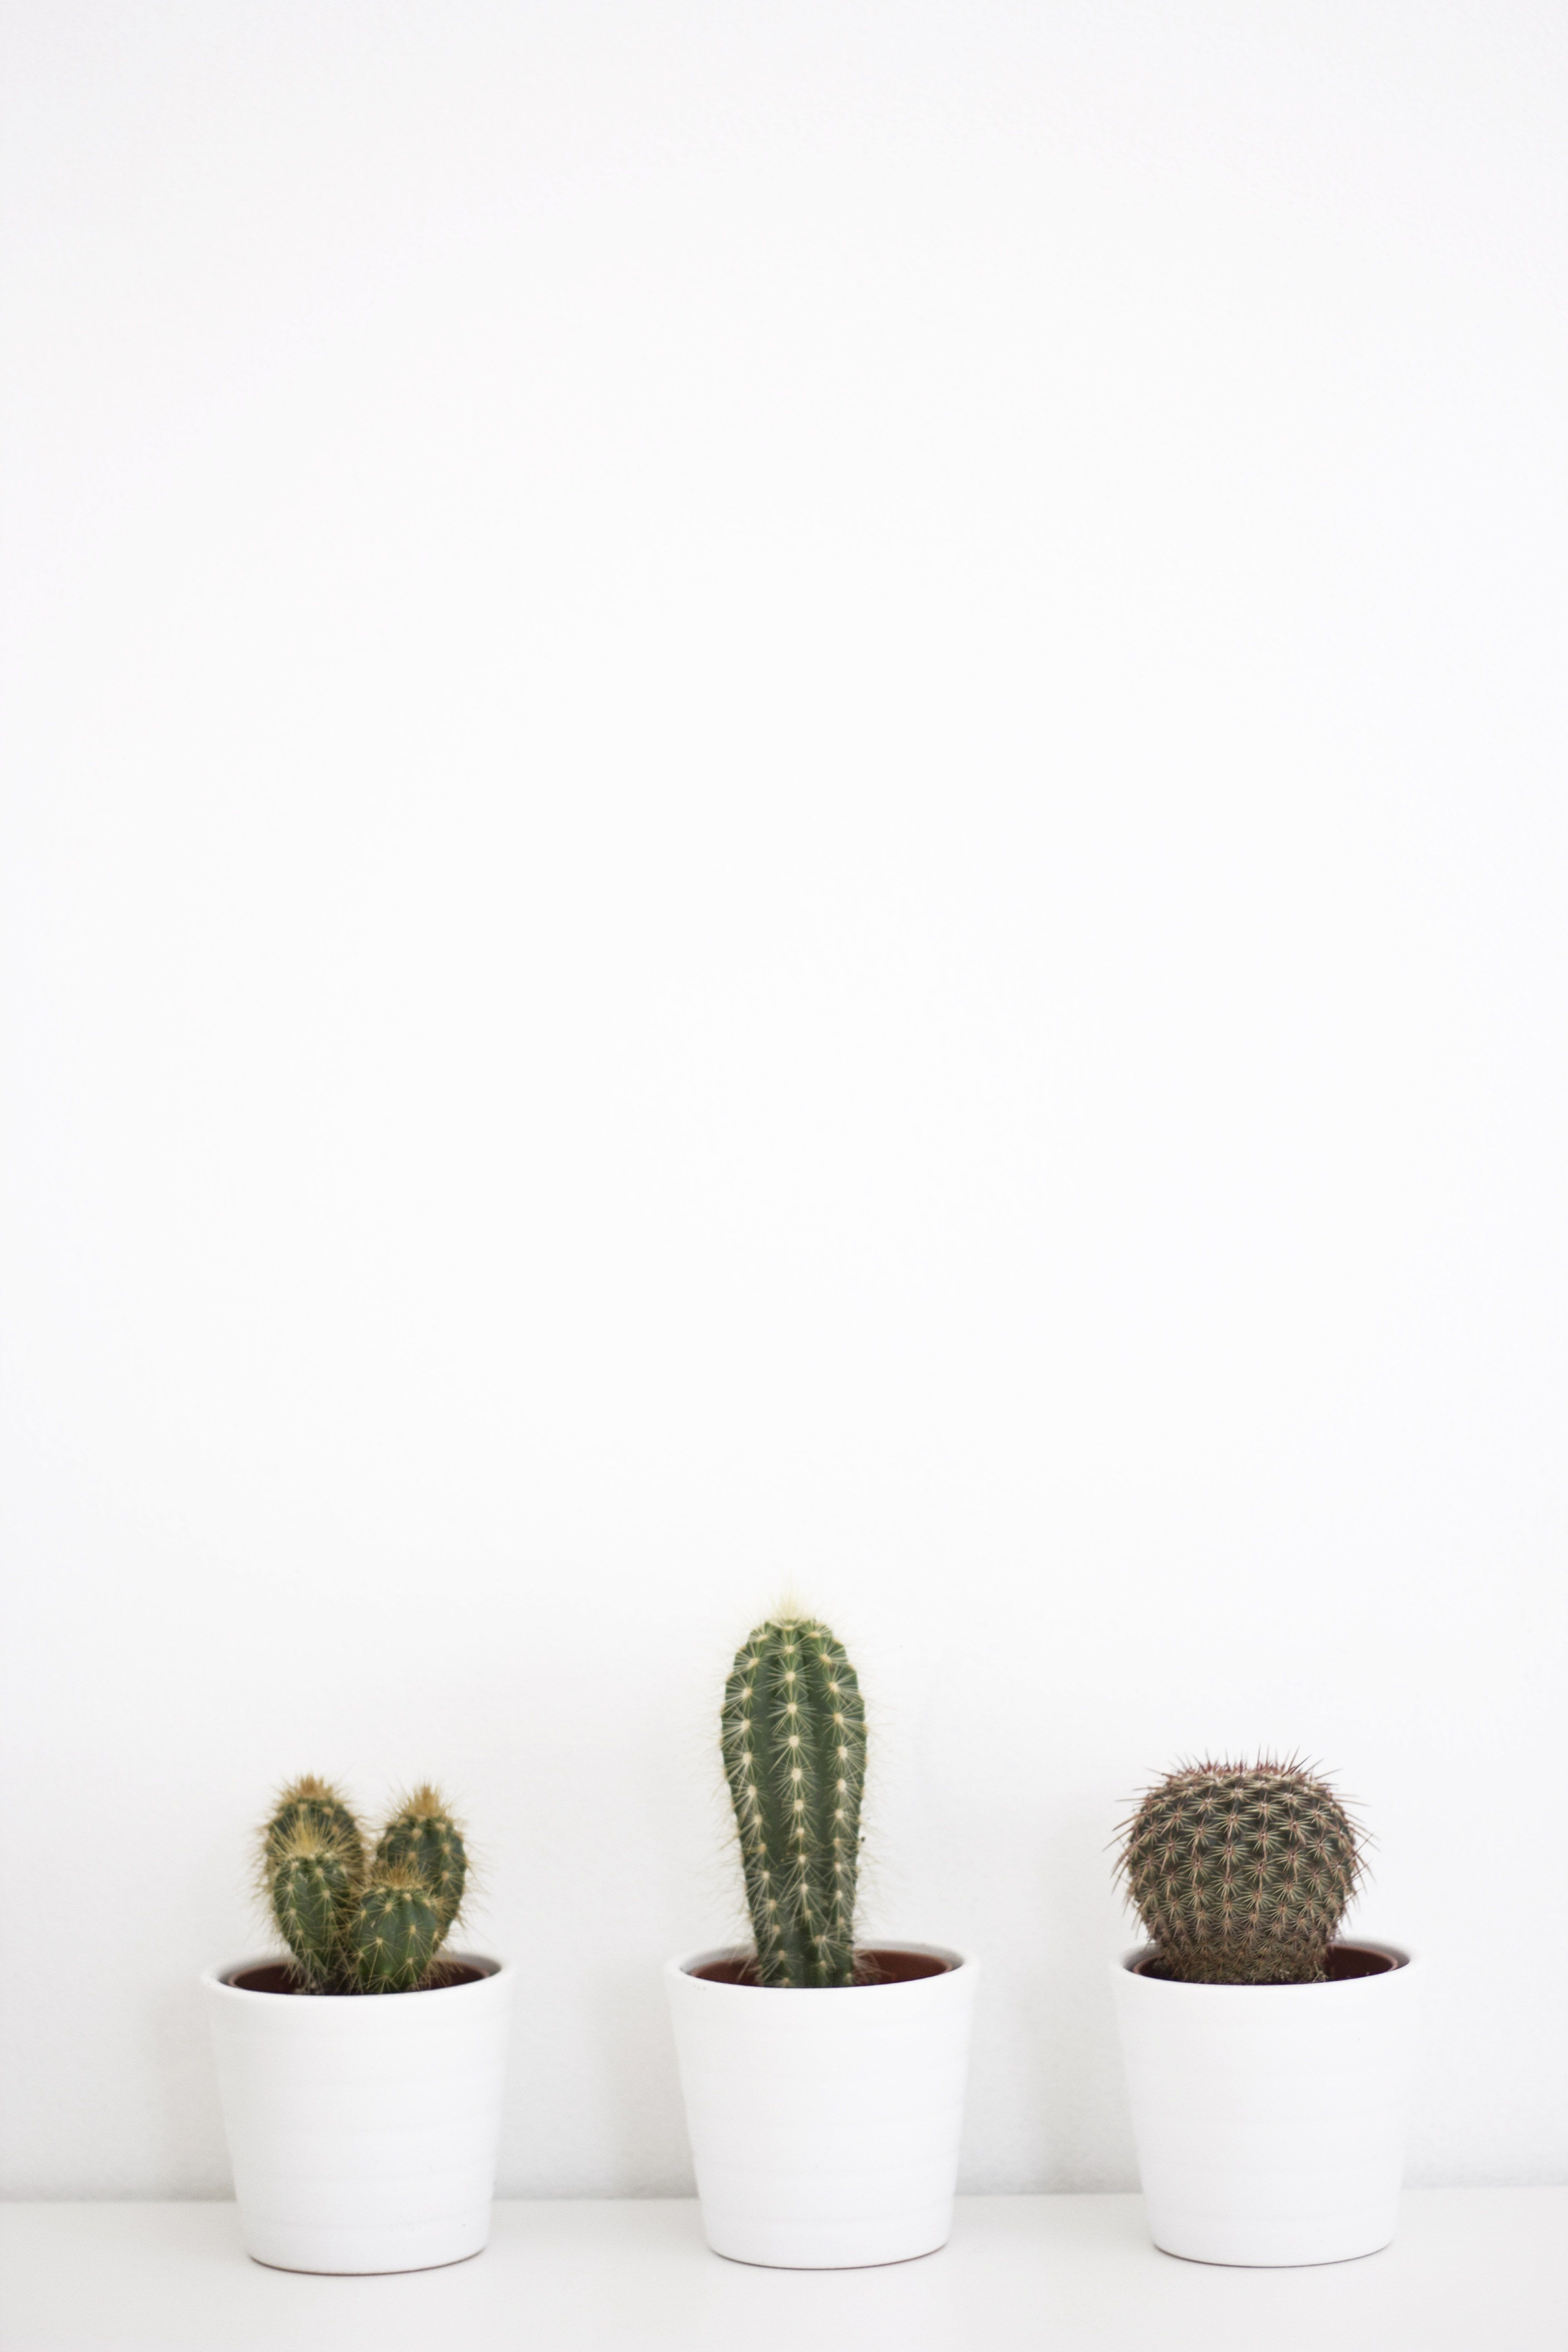 Minimalist Cactus Wallpapers Top Free Minimalist Cactus Backgrounds Wallpaperaccess